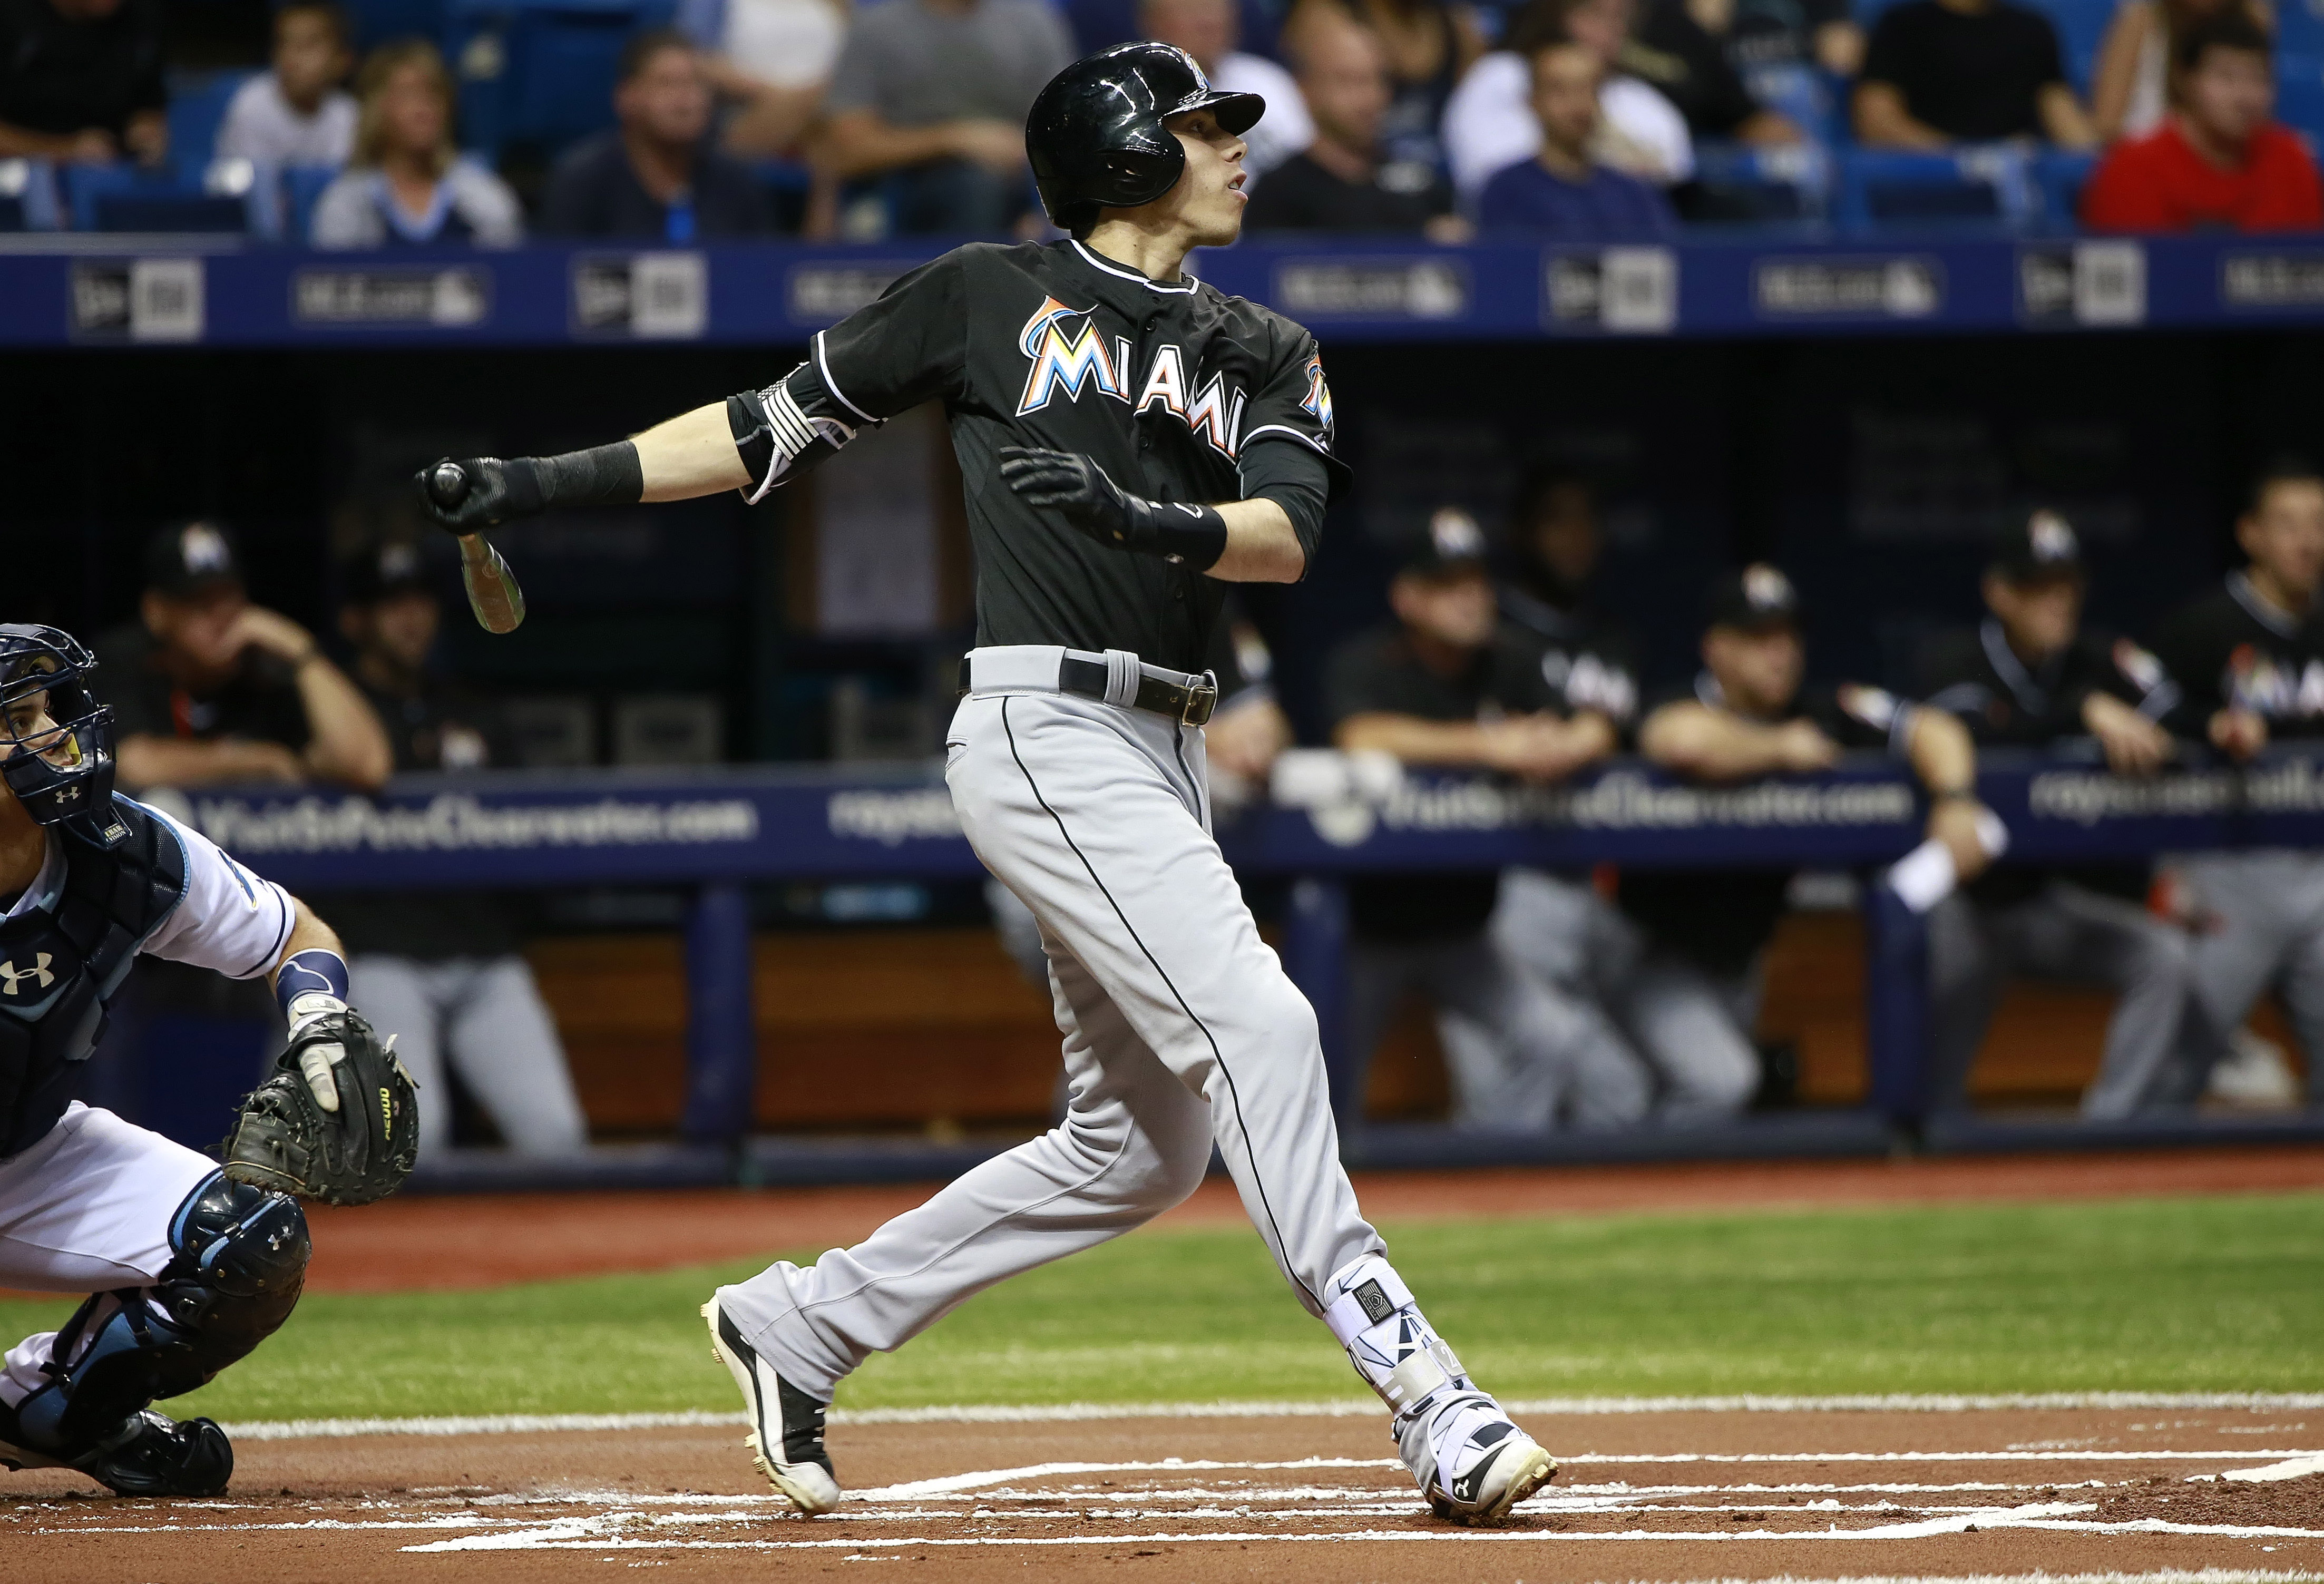 Christian Yelich was good in 2015, but can he be more than this?